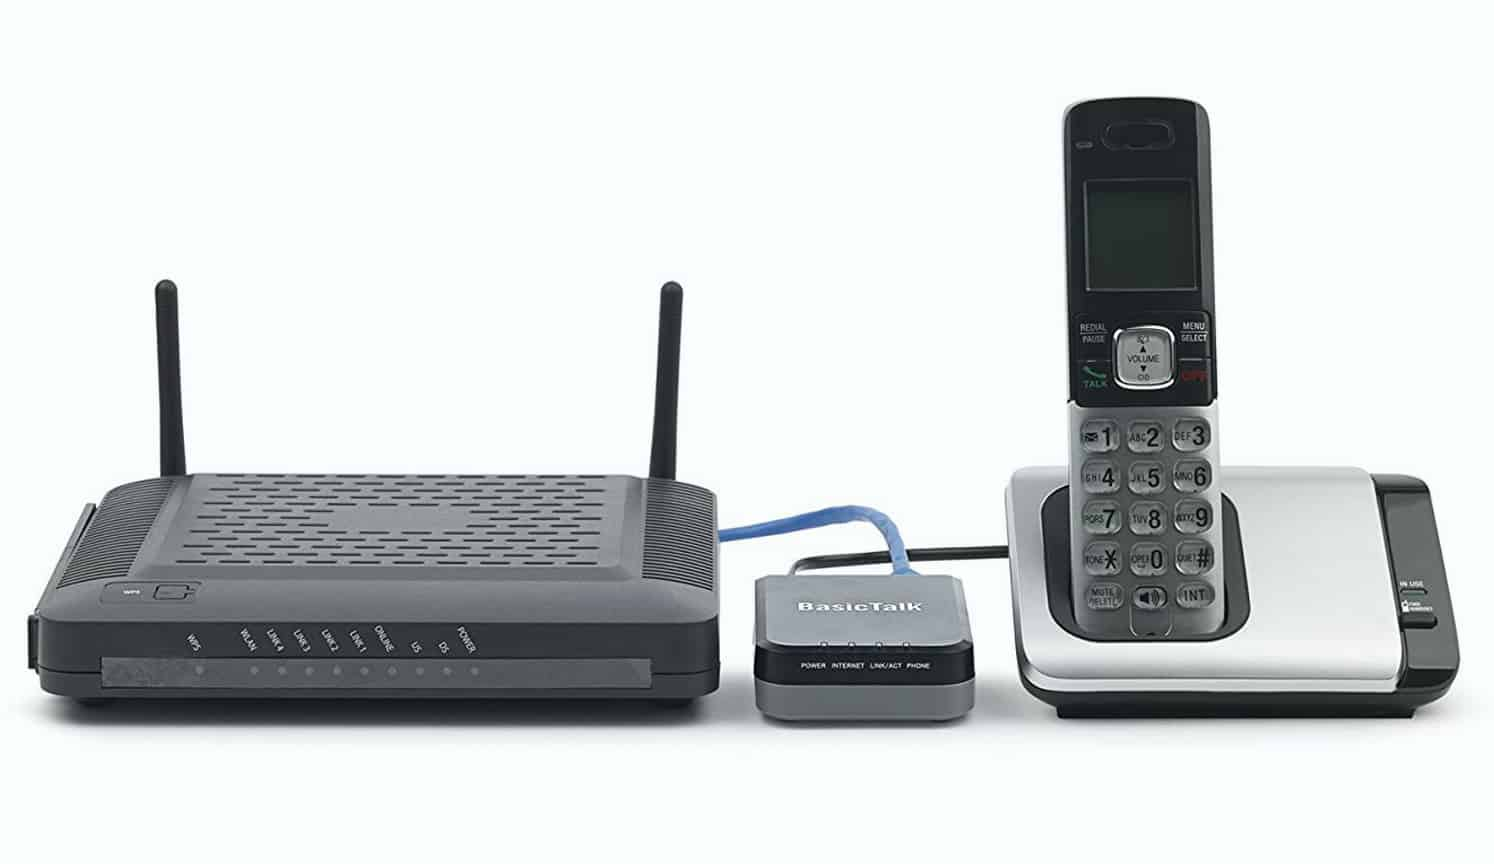 Internet Phone Adapter as the third related product of VoIP Home Phone